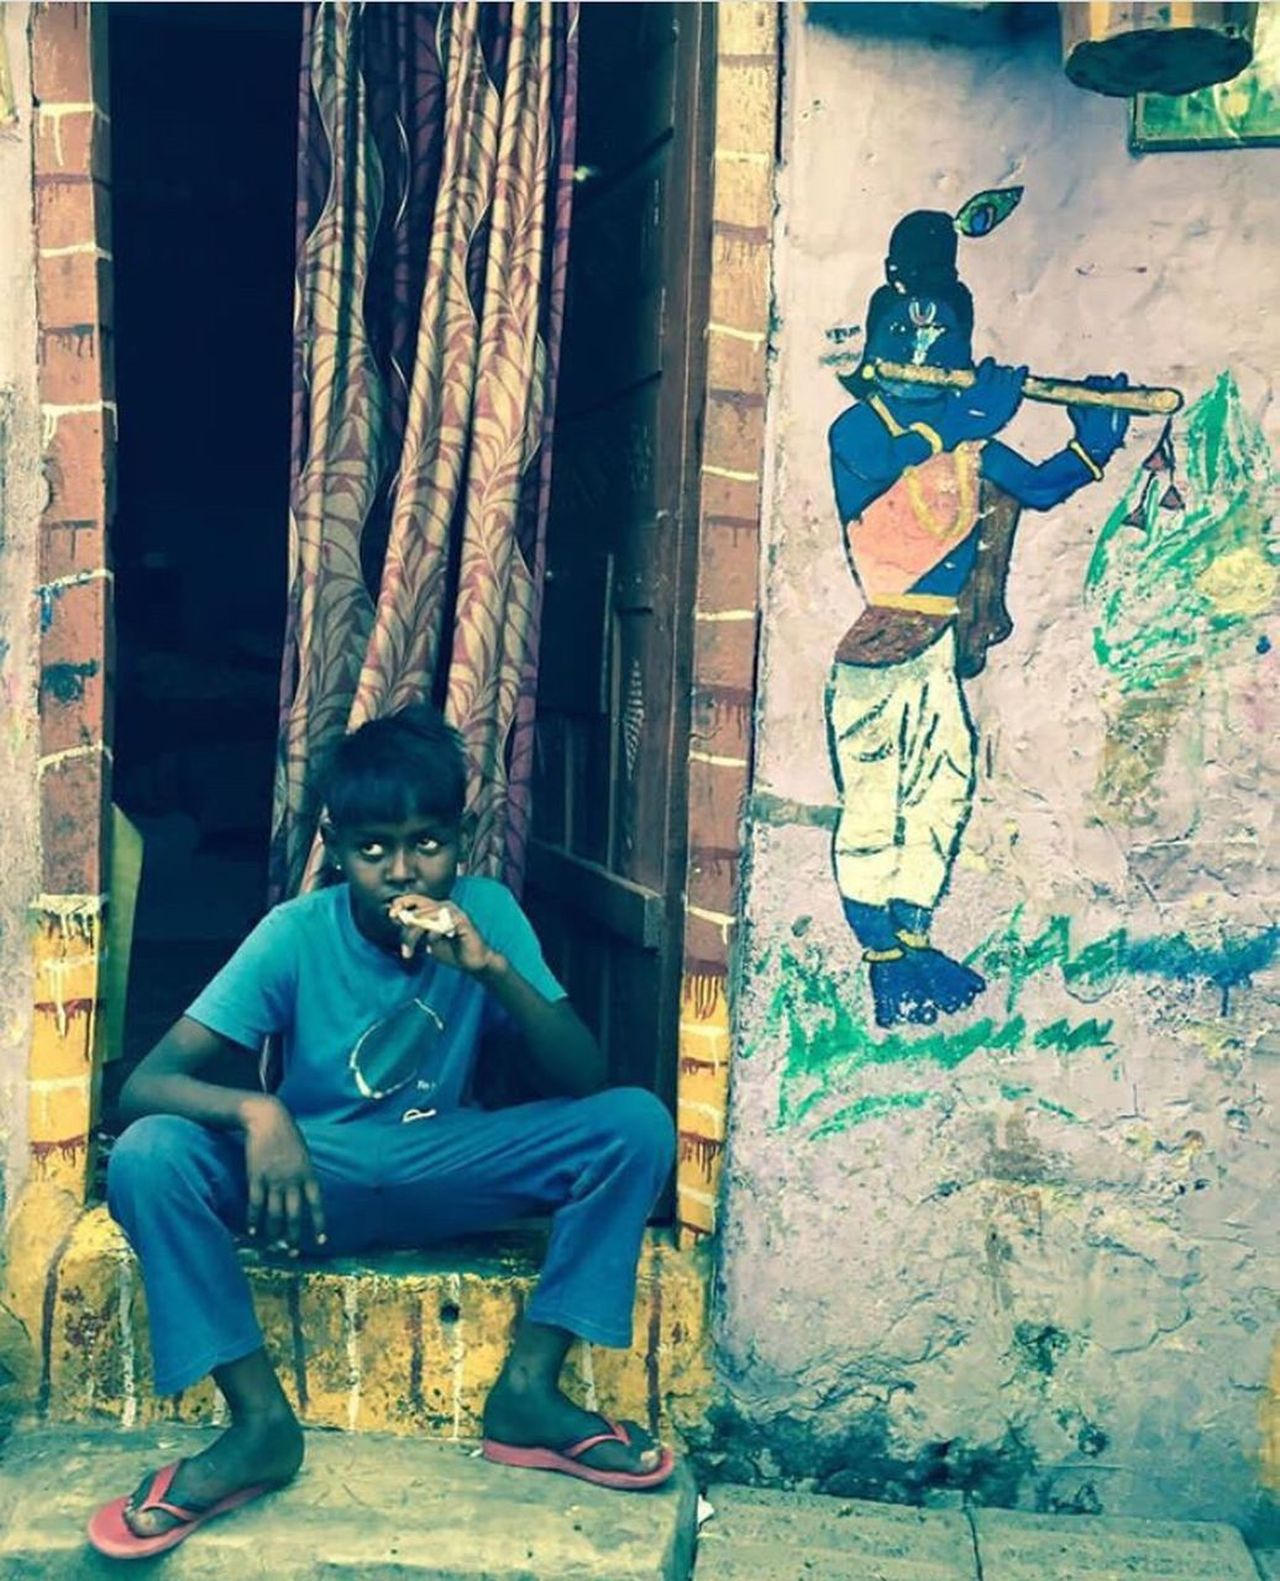 The Pied Piper Mysteriousindia Delhidiaries Twoinone Blackisbeautiful